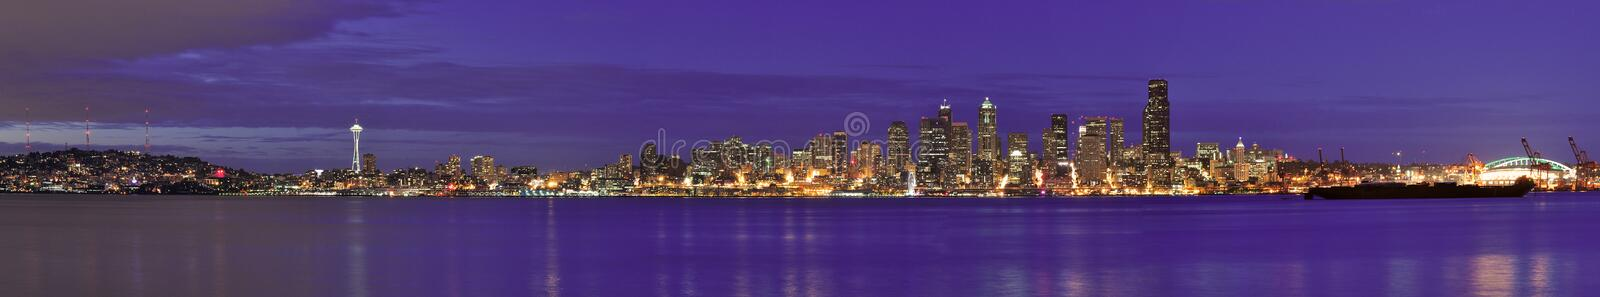 Seattle Downtown Panorama- city skyline at night time stock images